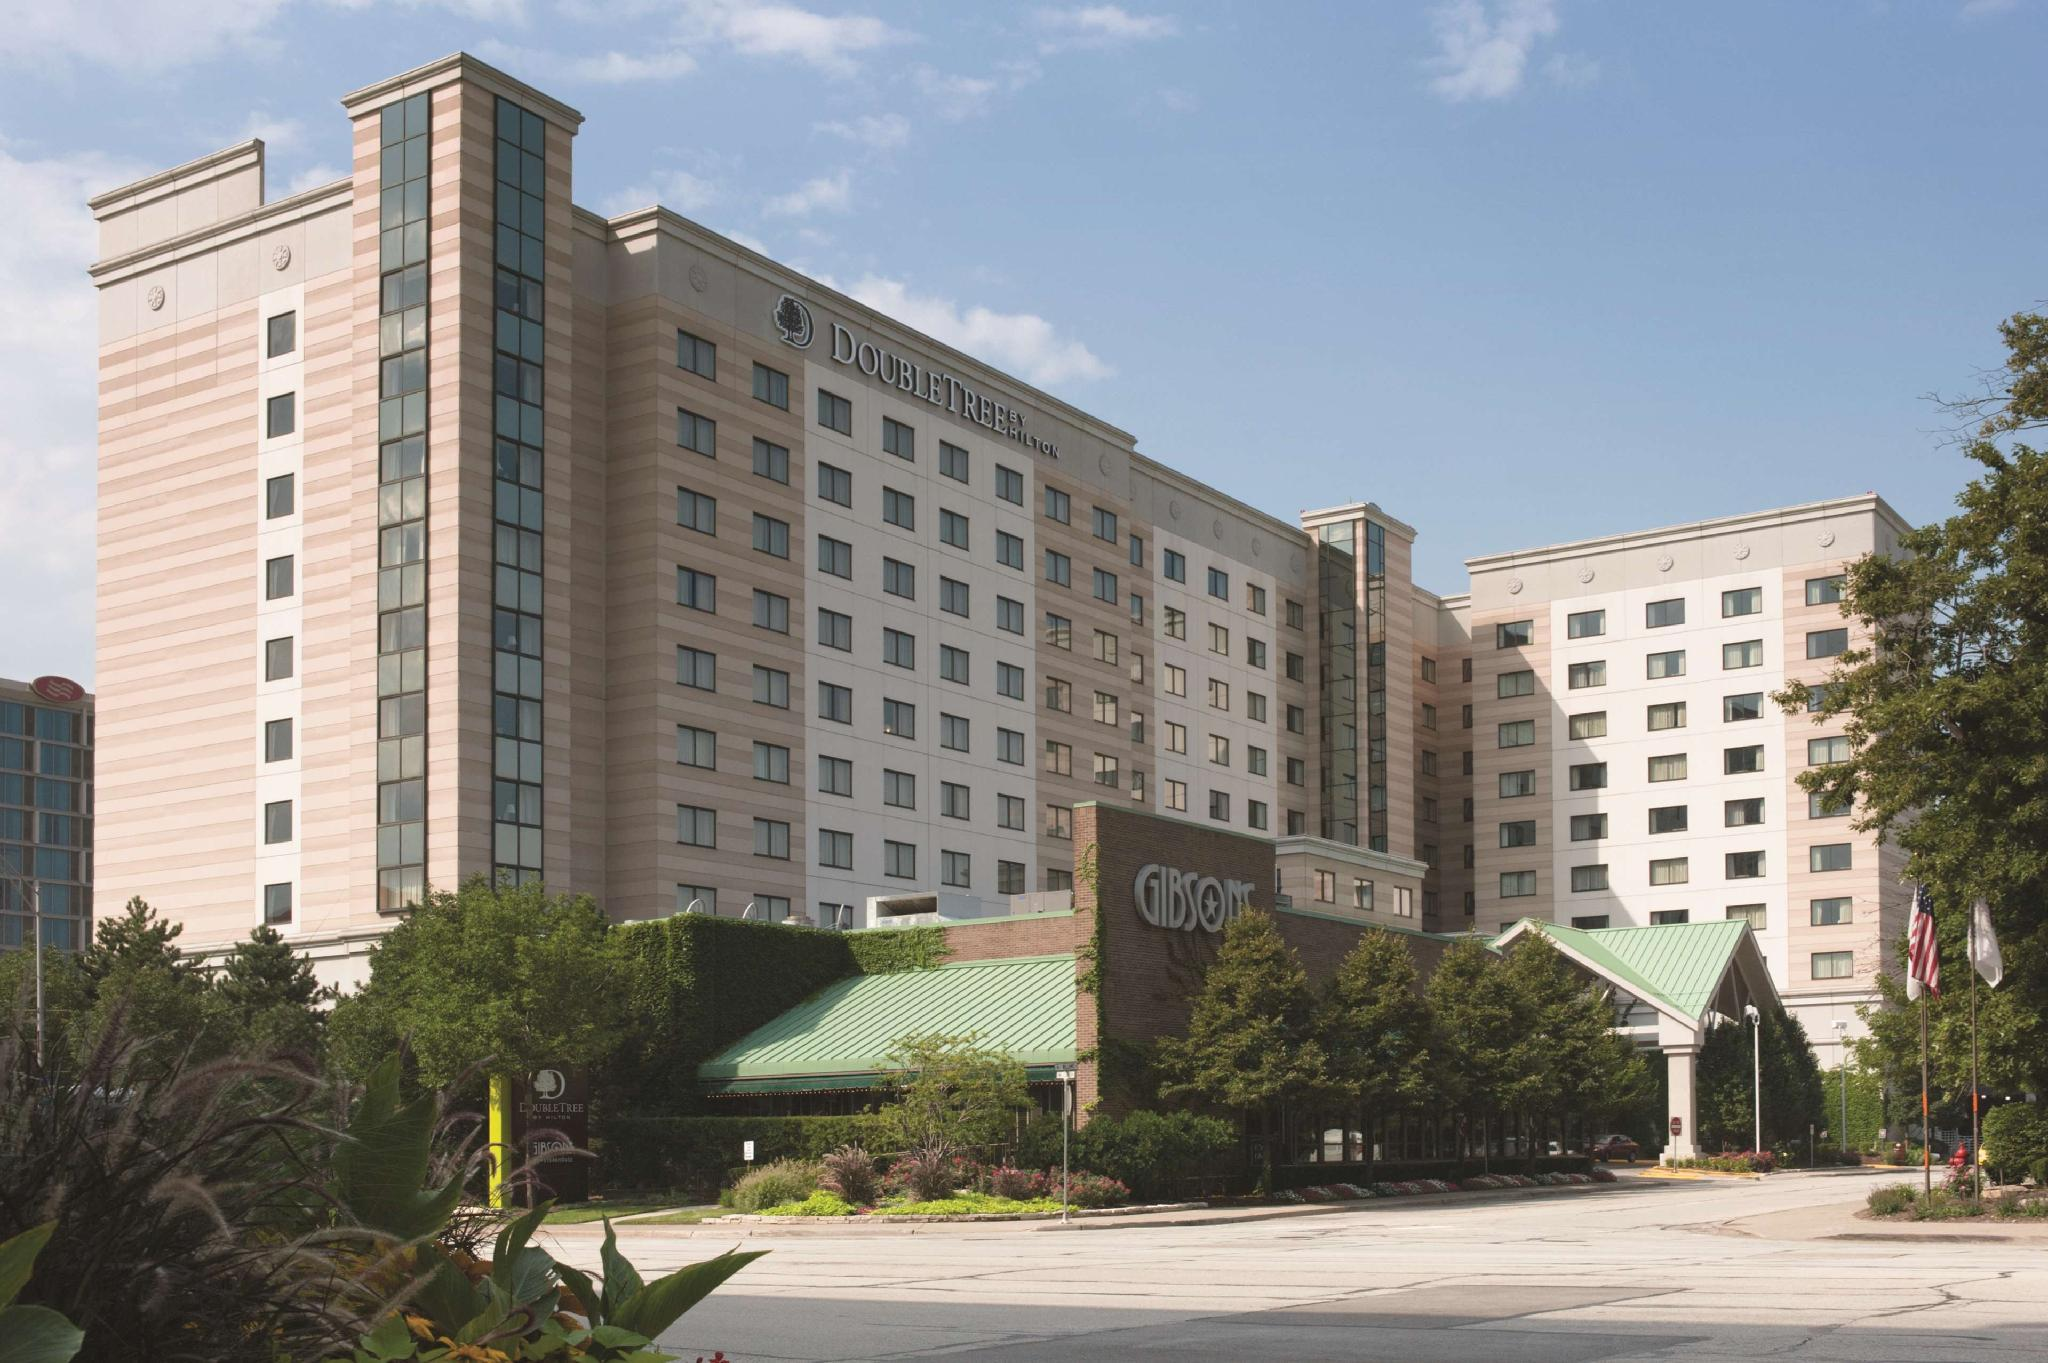 DoubleTree by Hilton Chicago O'Hare Airport - Rosemont image